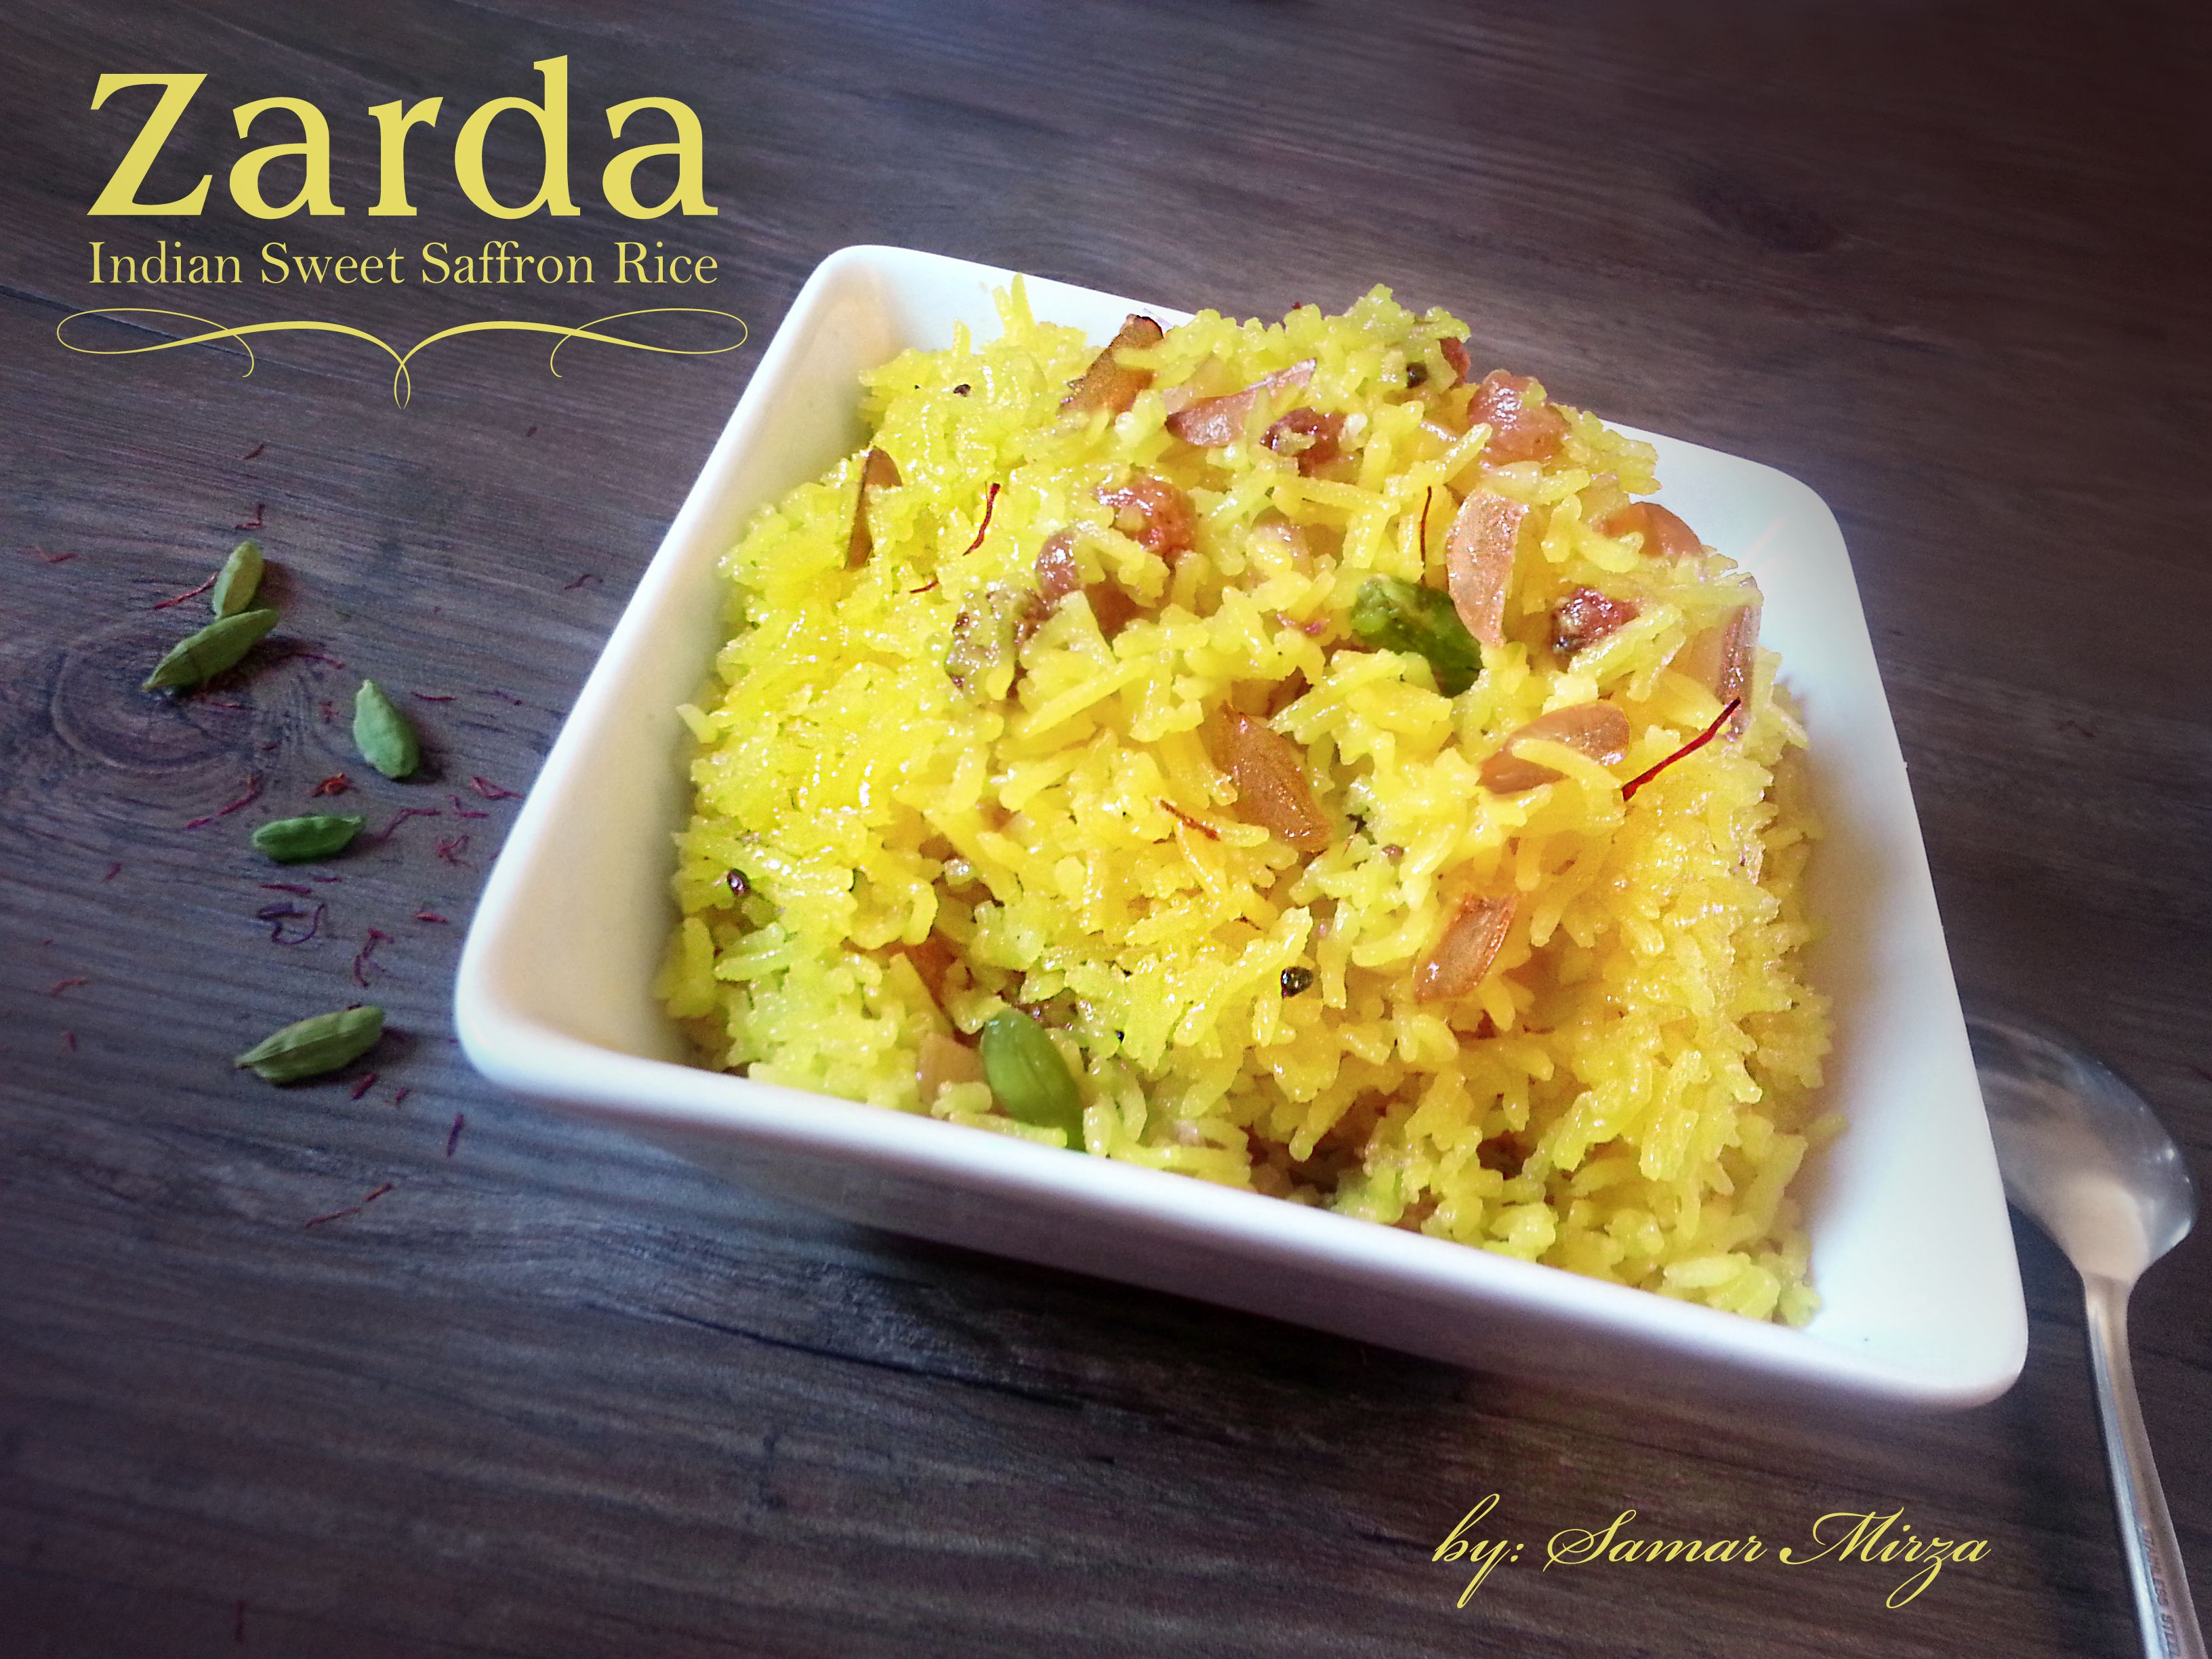 Zarda Meethe Chawal Meethe Pulao Is A Traditional South